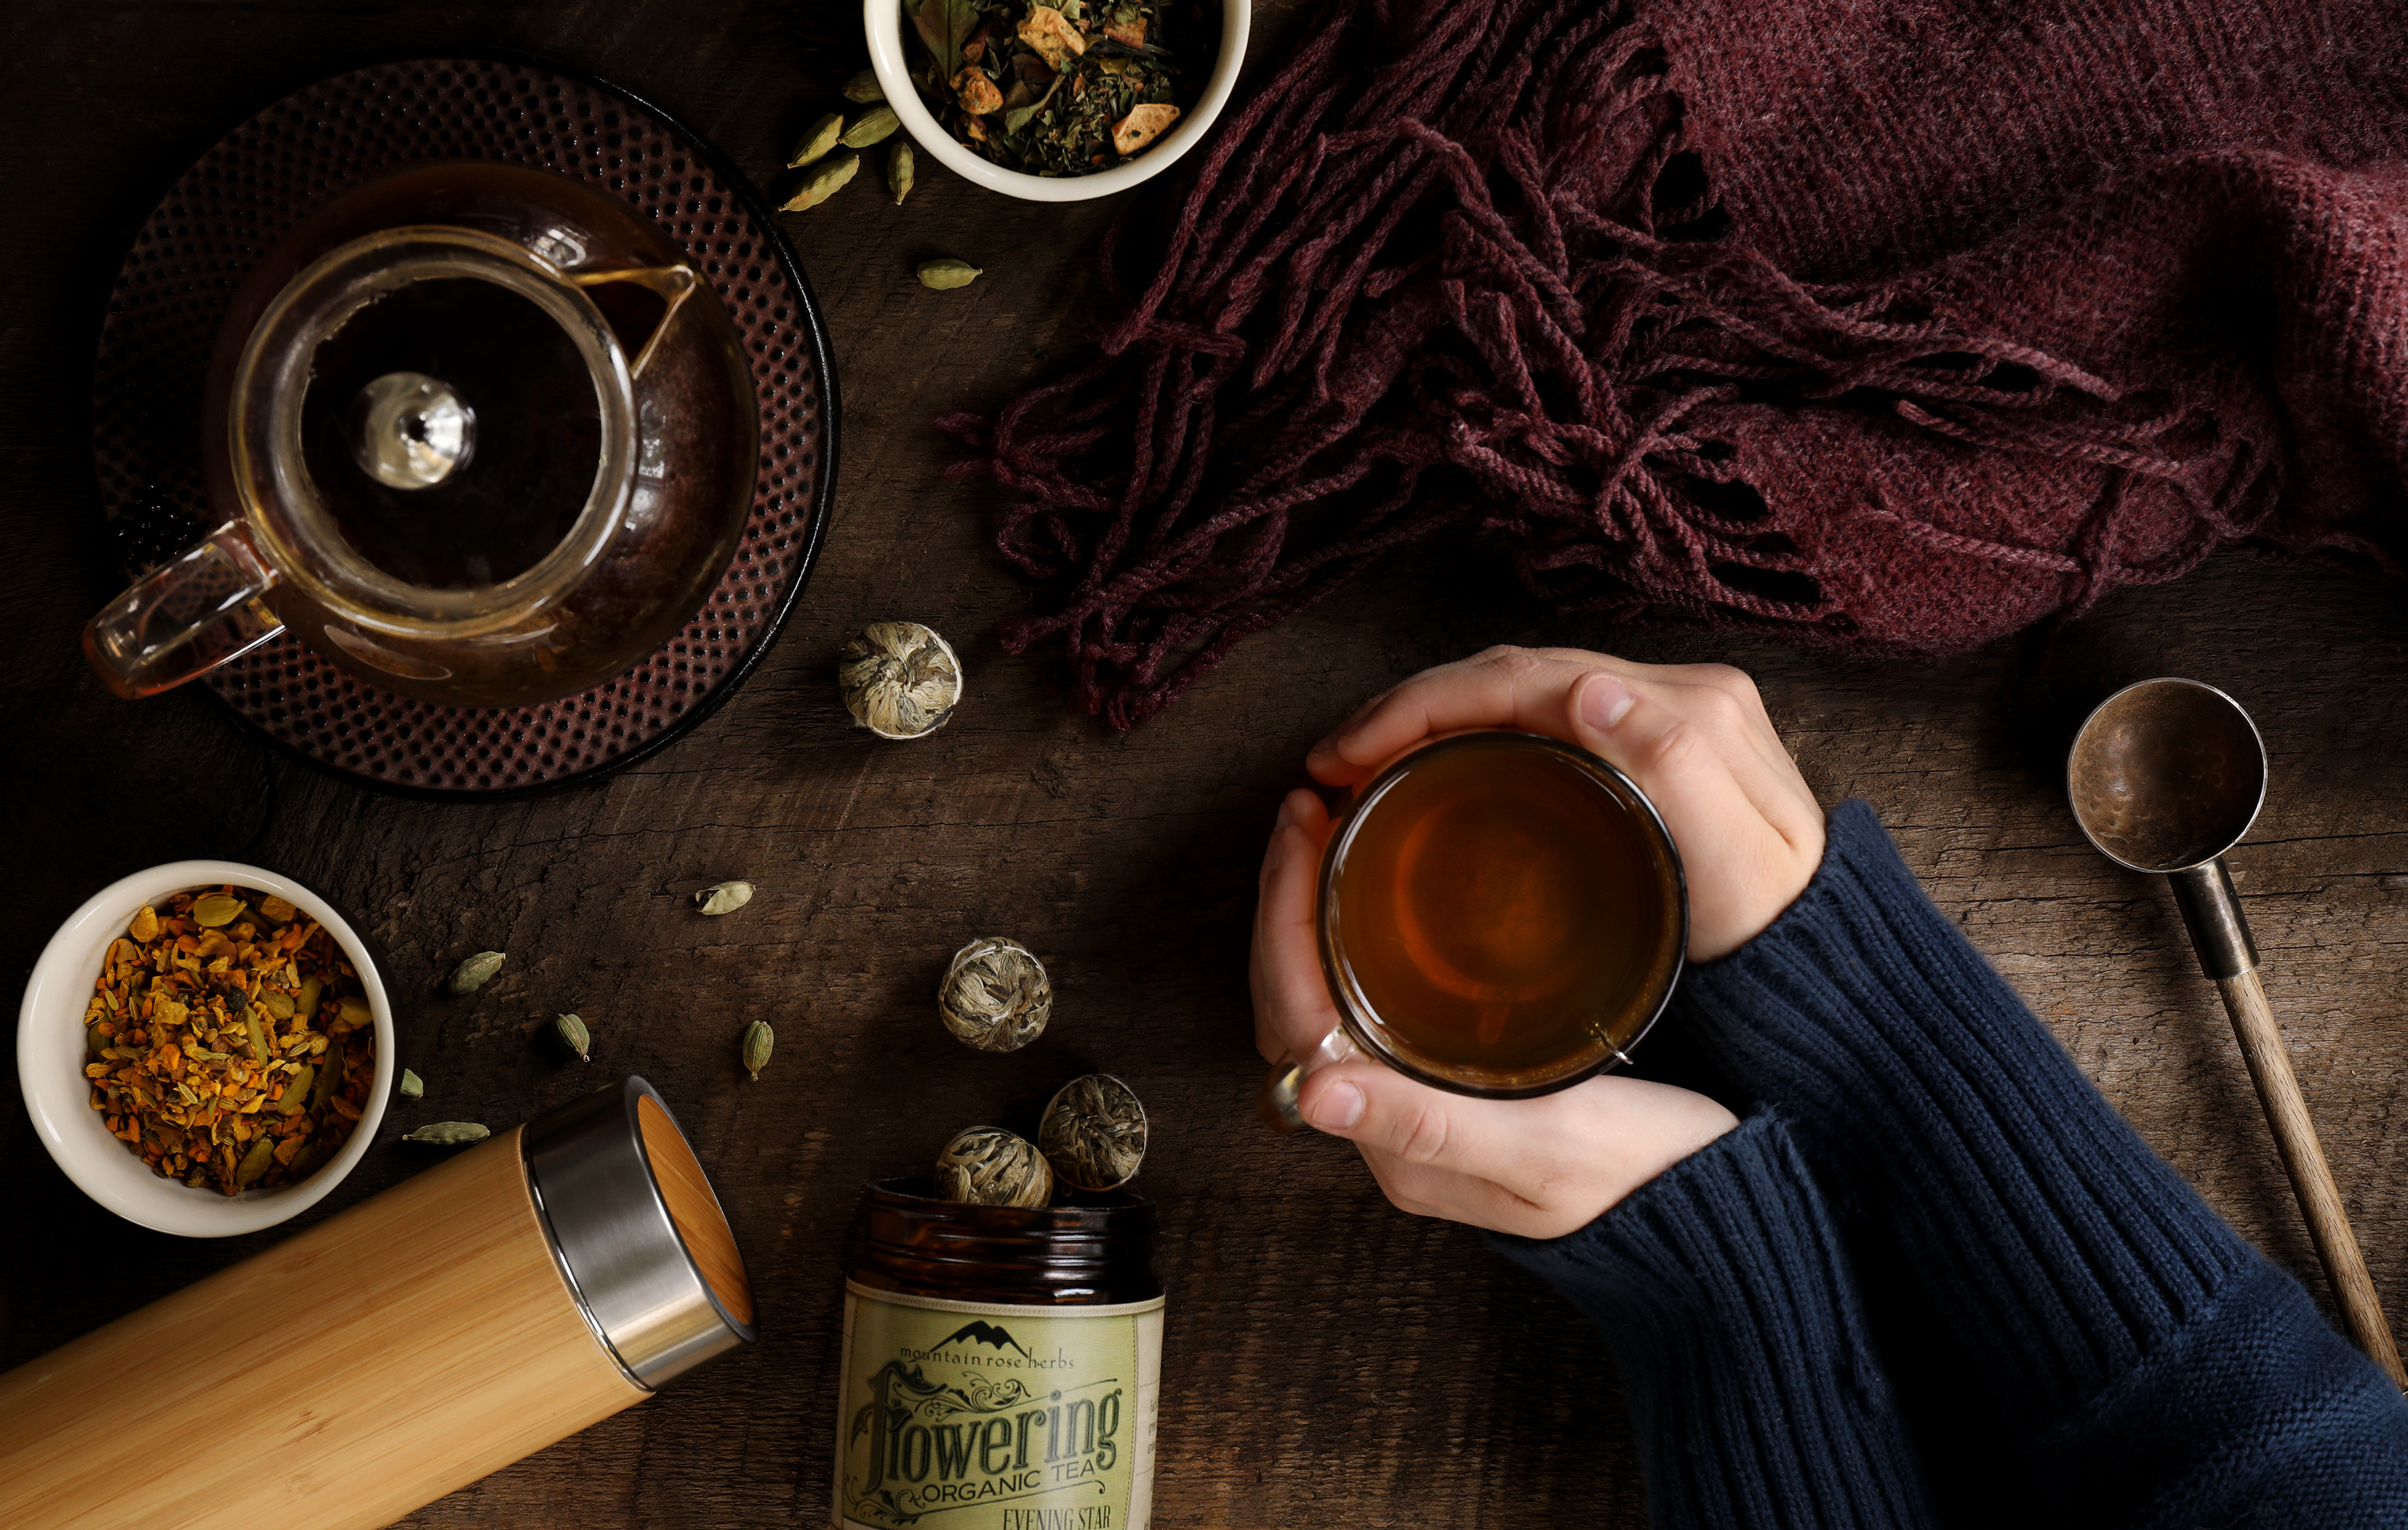 Gifts for tea lovers include flowering teas and a clear glass teapot, travel tea tumblers in bamboo, and other accessories for any tea enthusiast.